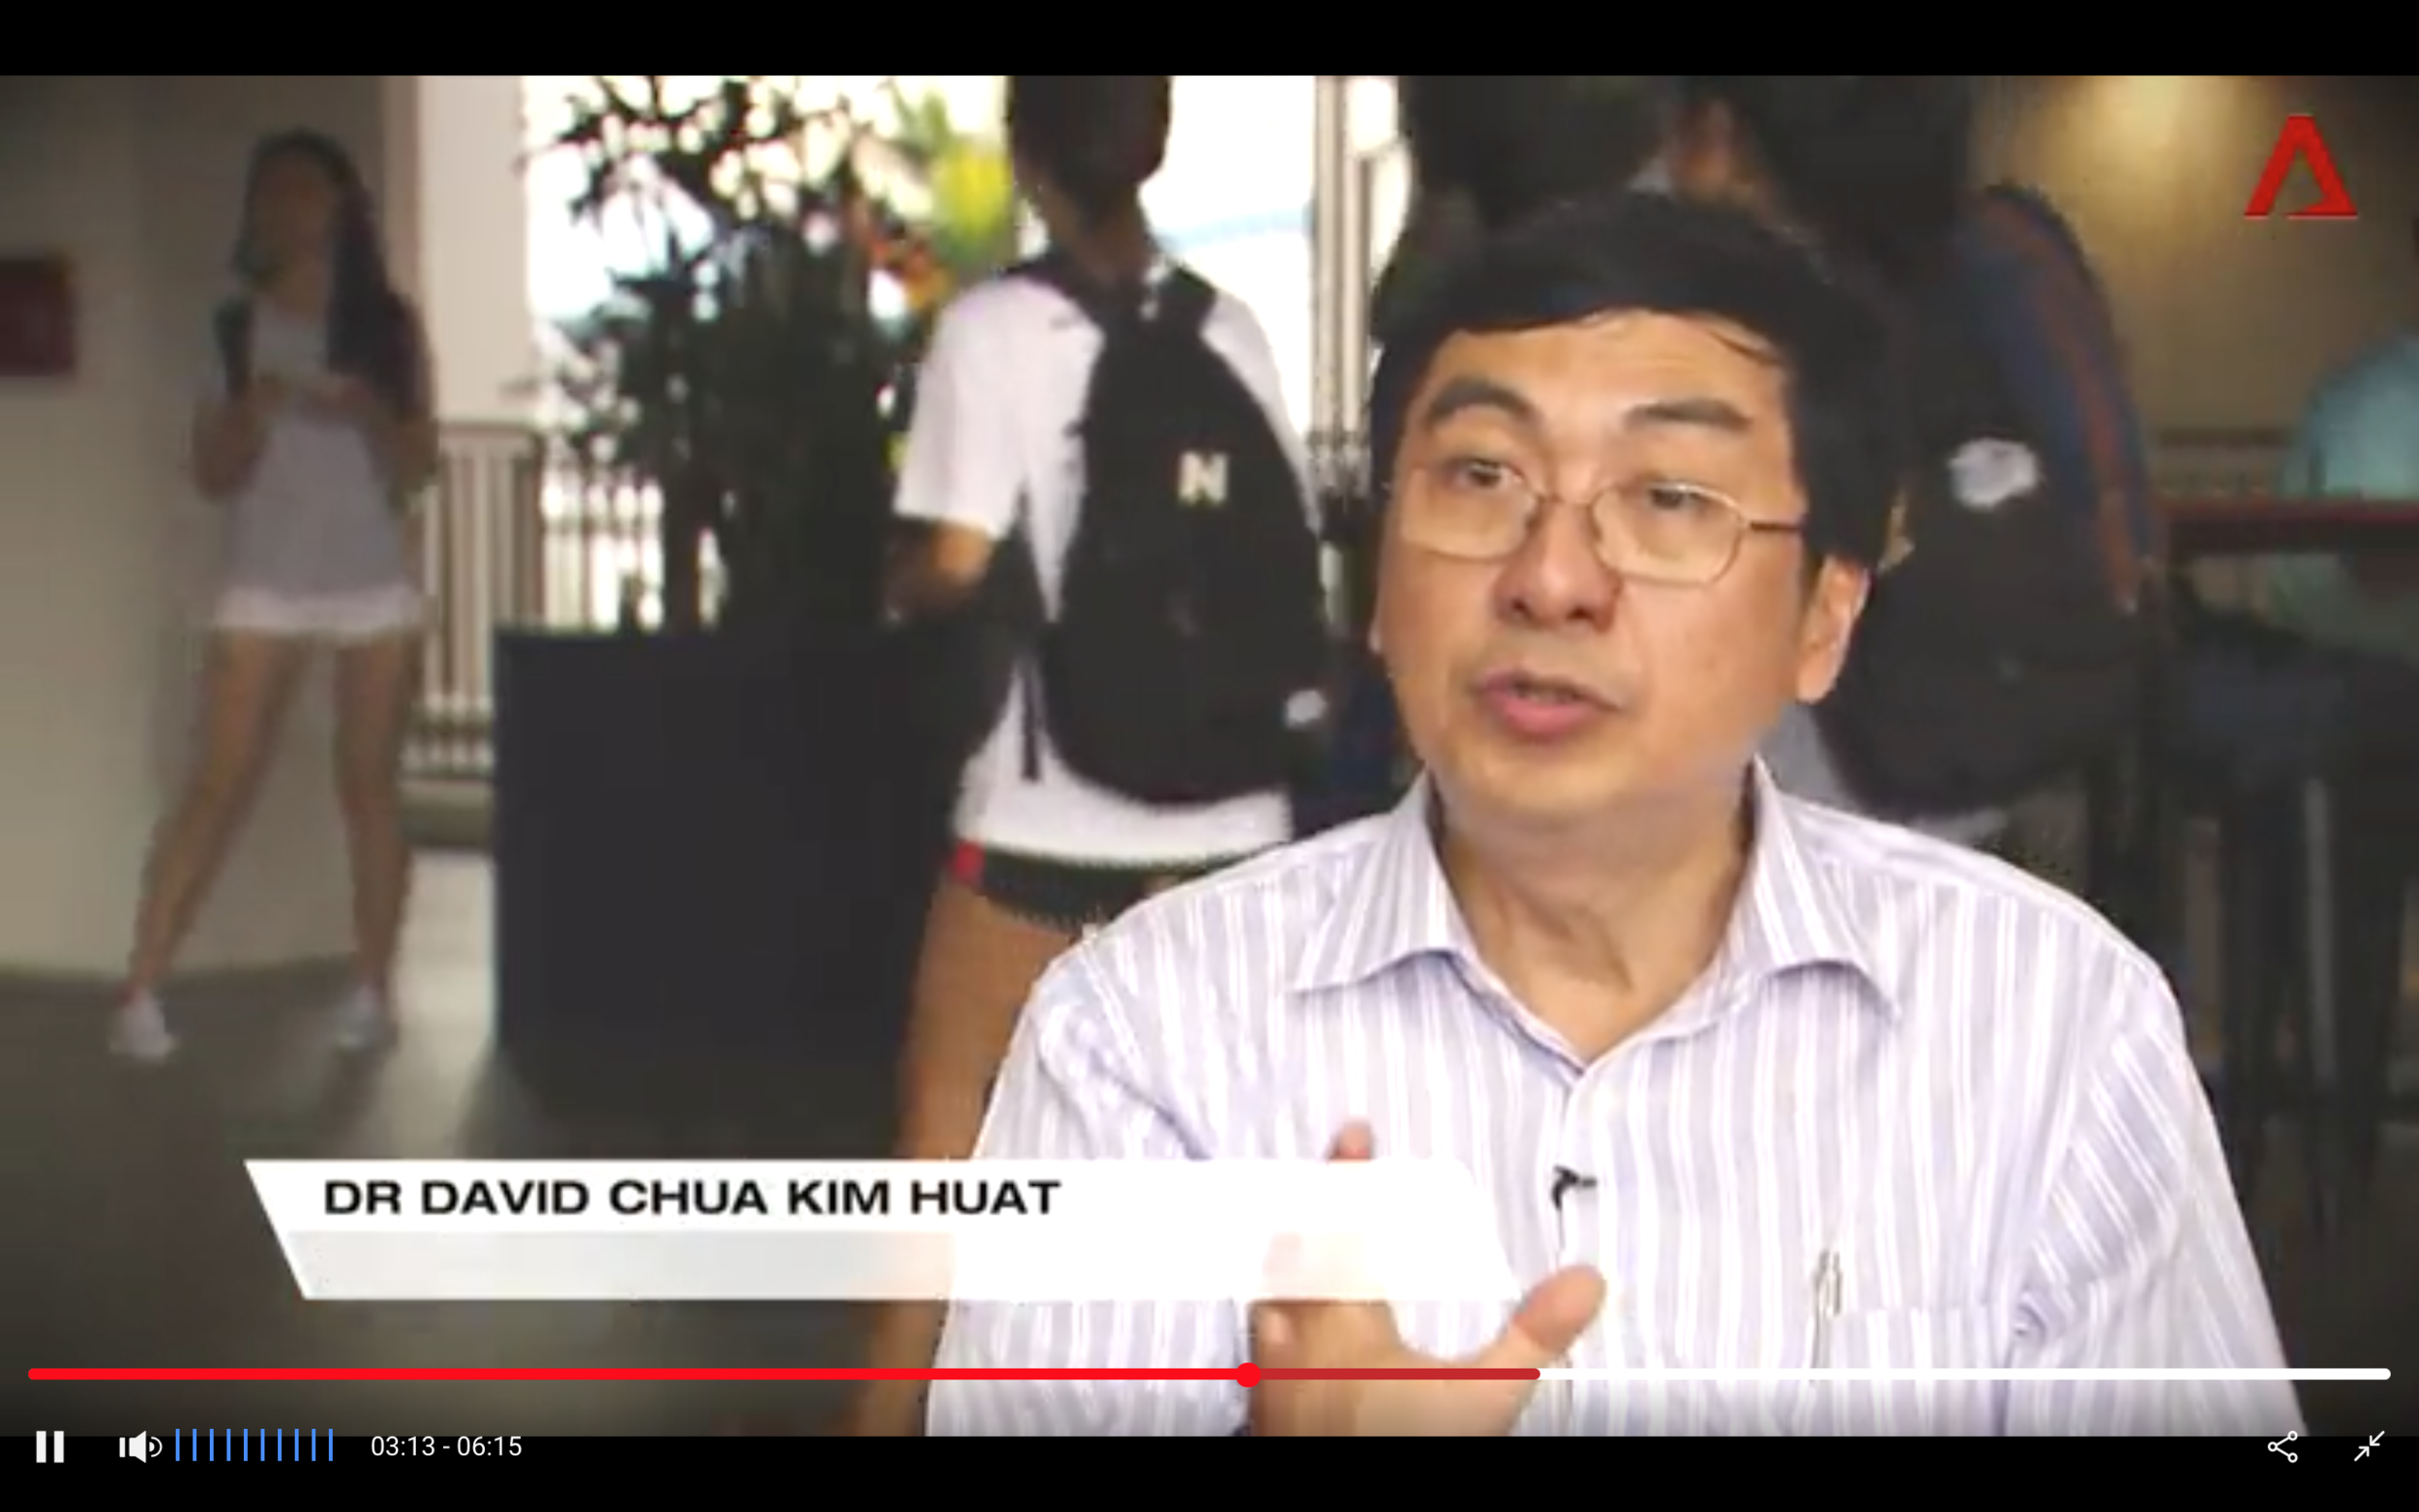 Dr. David Chua, cofounder at Lean Station talks about how construction will benefit with technology and automation